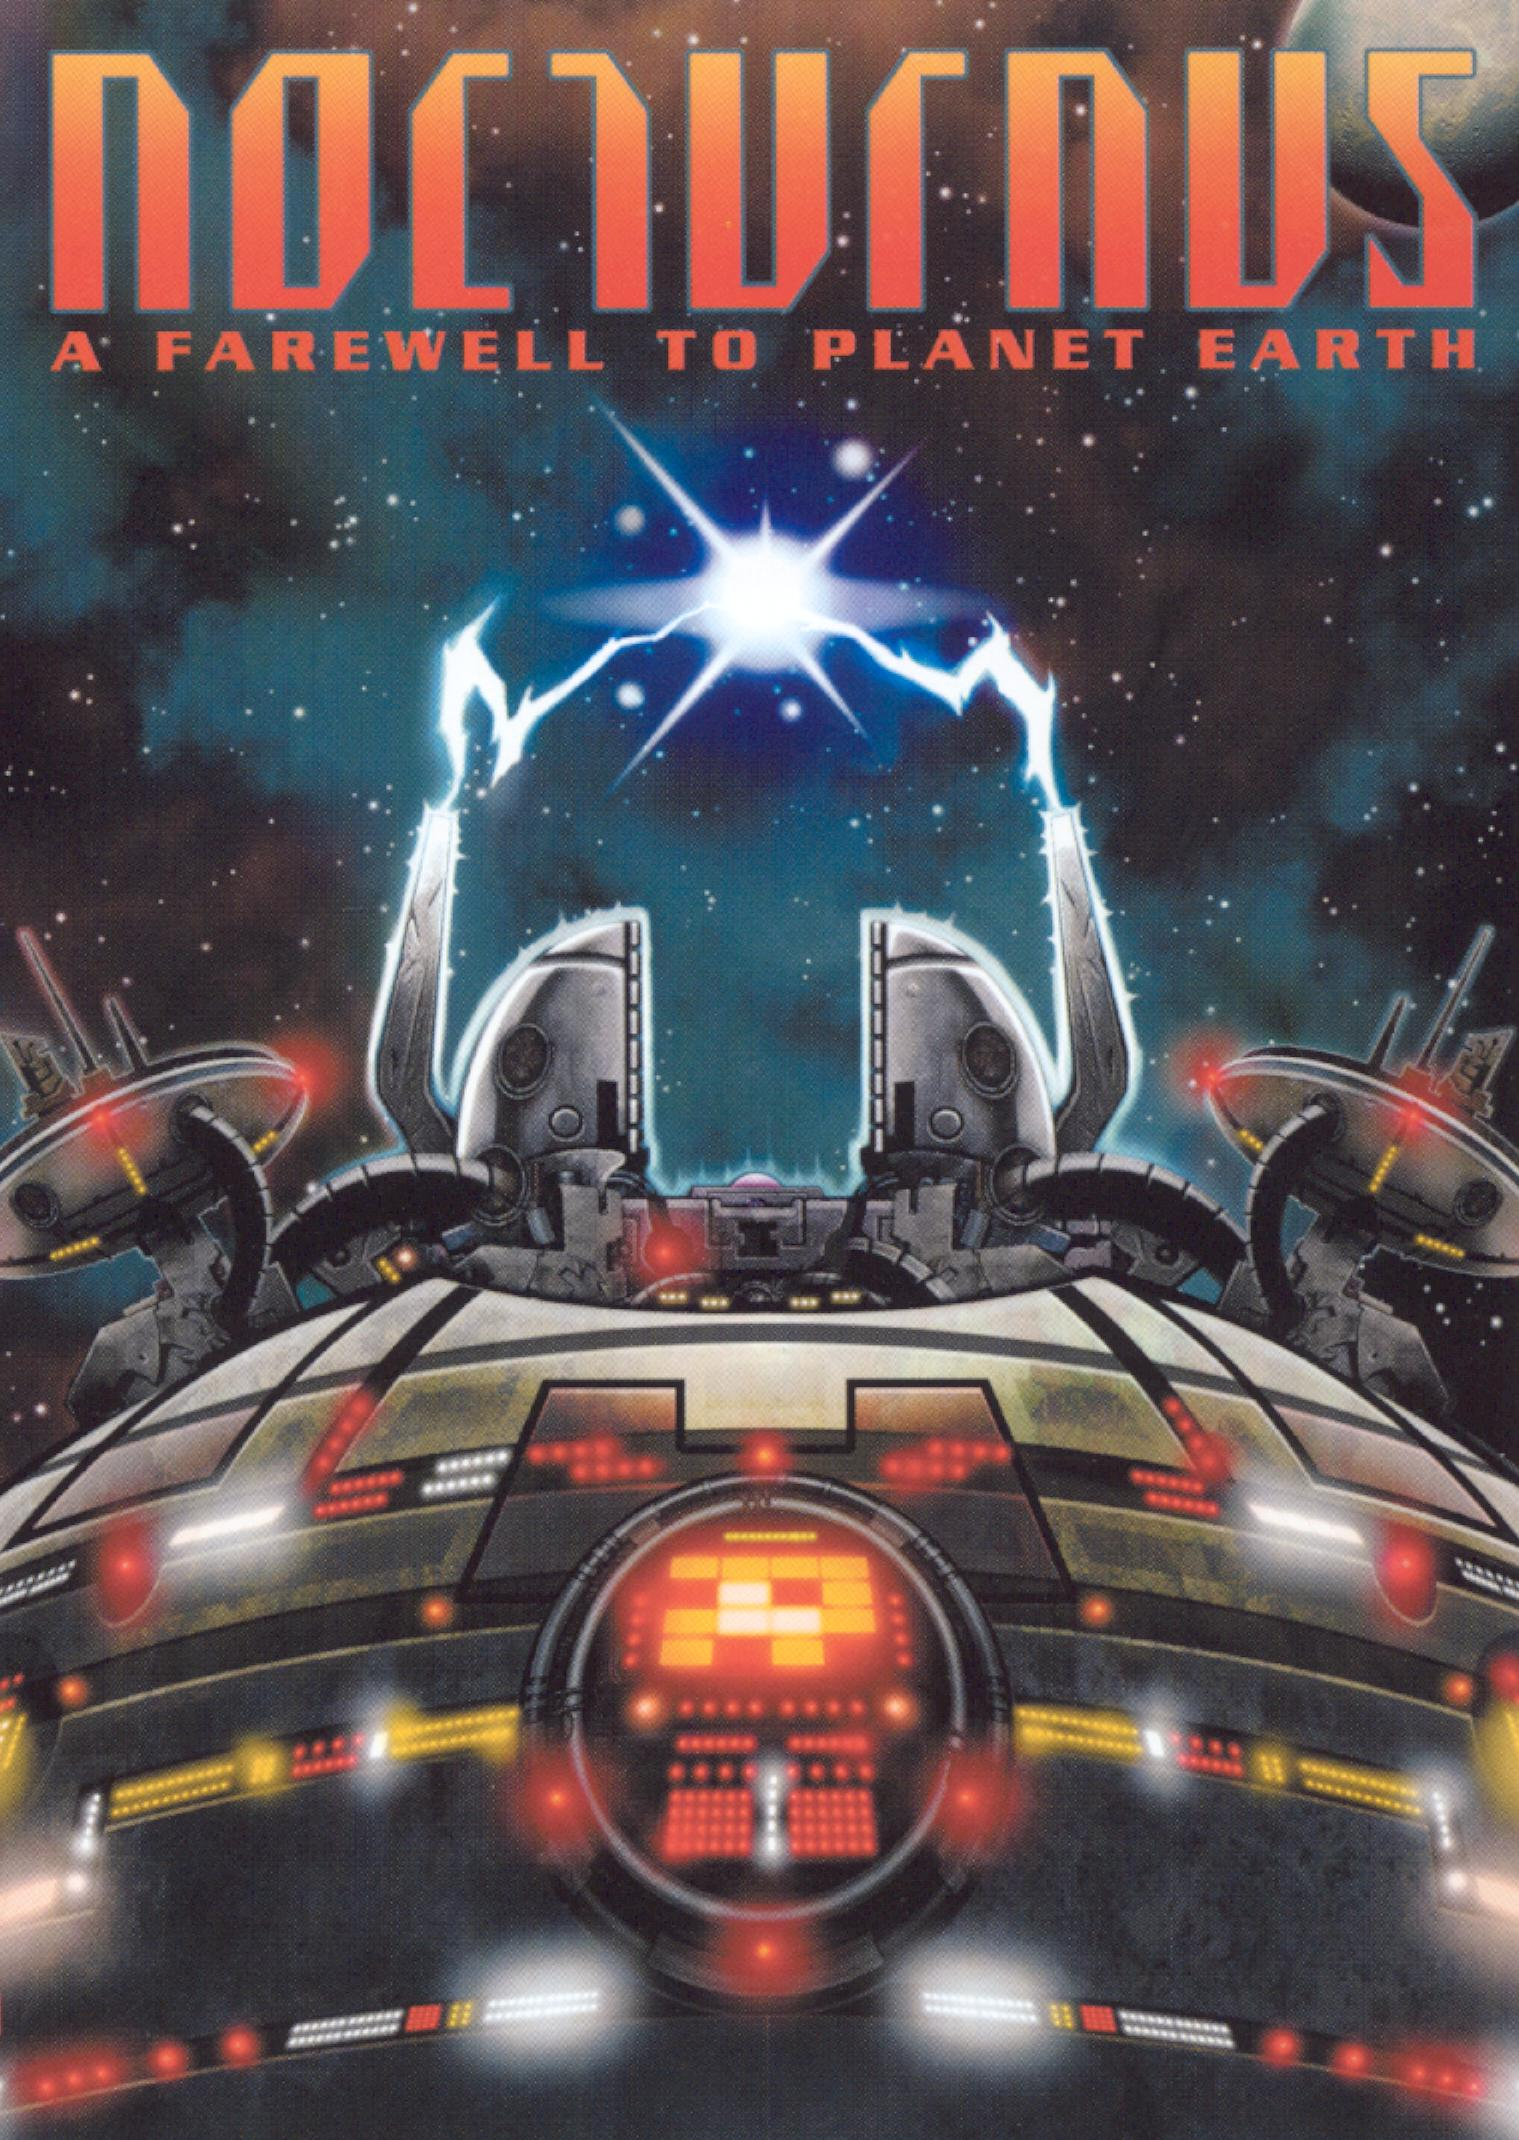 Nocturnus: A Farewell to Planet Earth